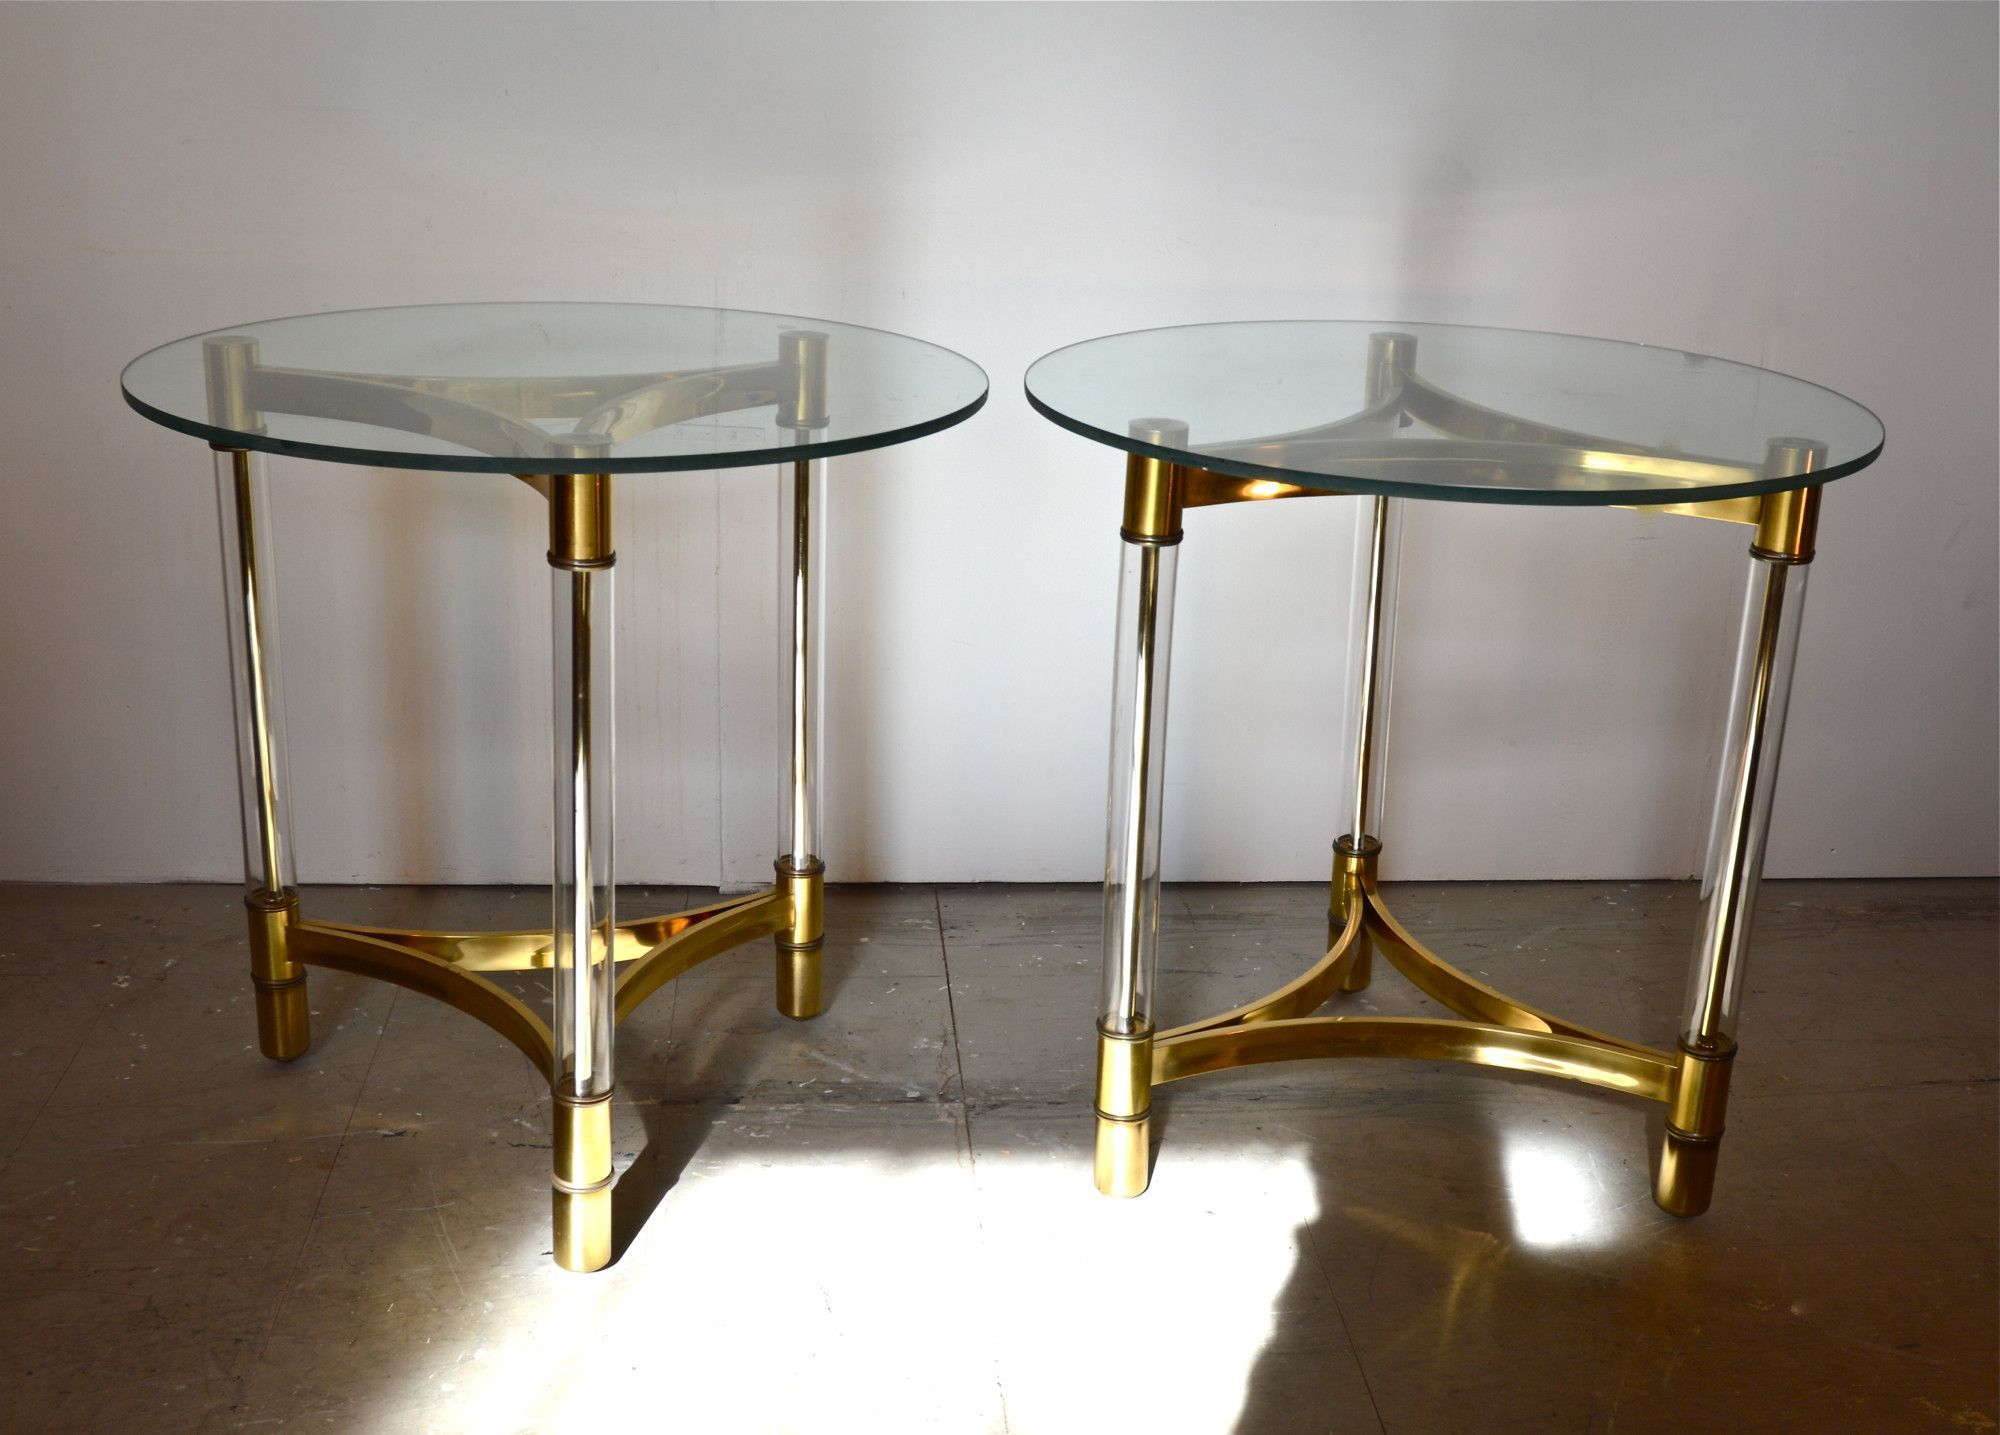 Modern glass end table  Brass and Glass End Tables  End Tables  Pinterest  Glass and Products